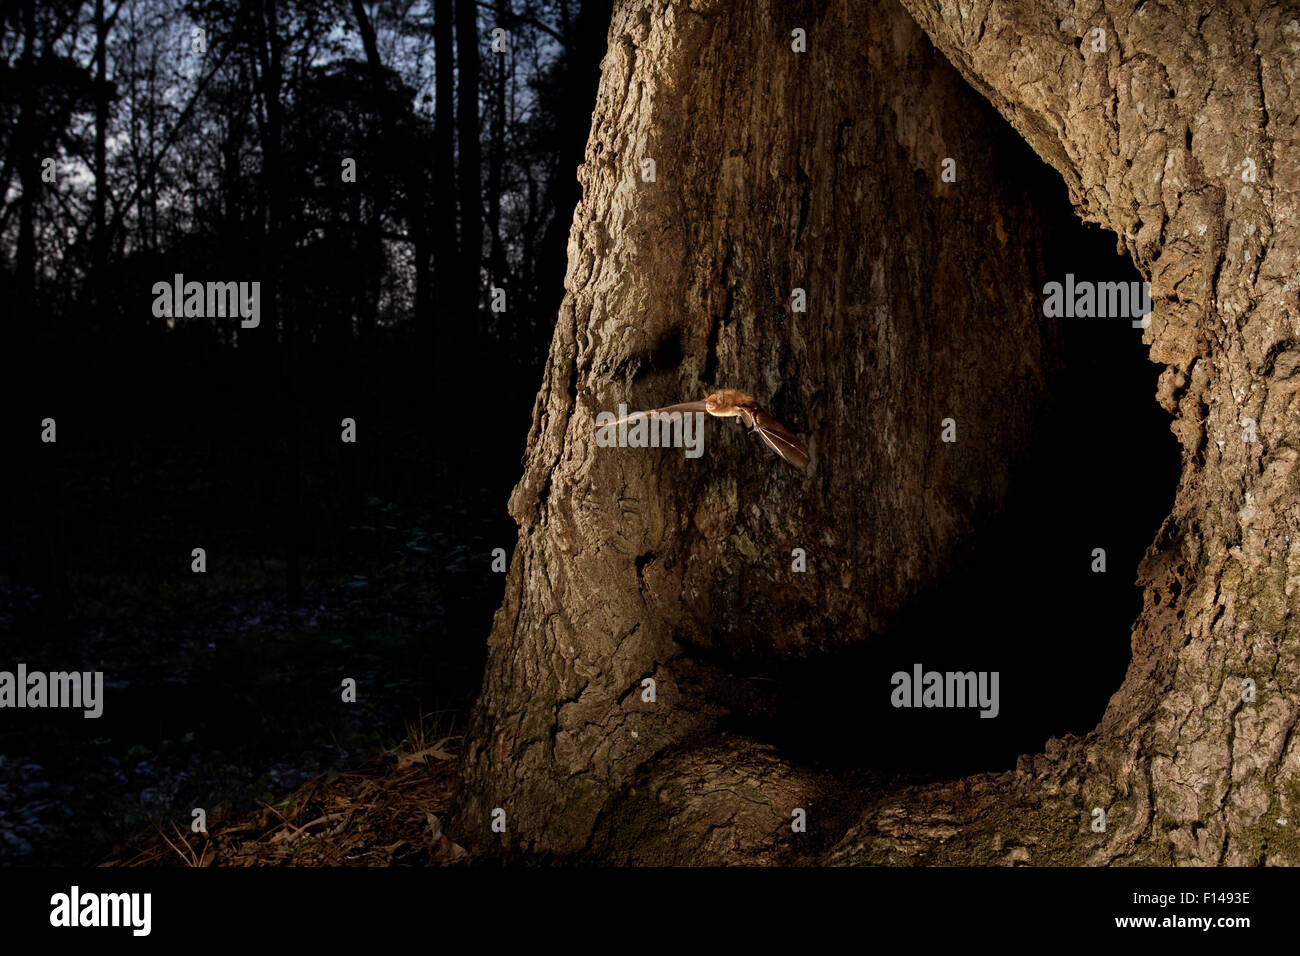 Southeastern myotis (Myotis austroriparius) flying out of a hollow tree roost at dusk, Central Texas, March. - Stock Image